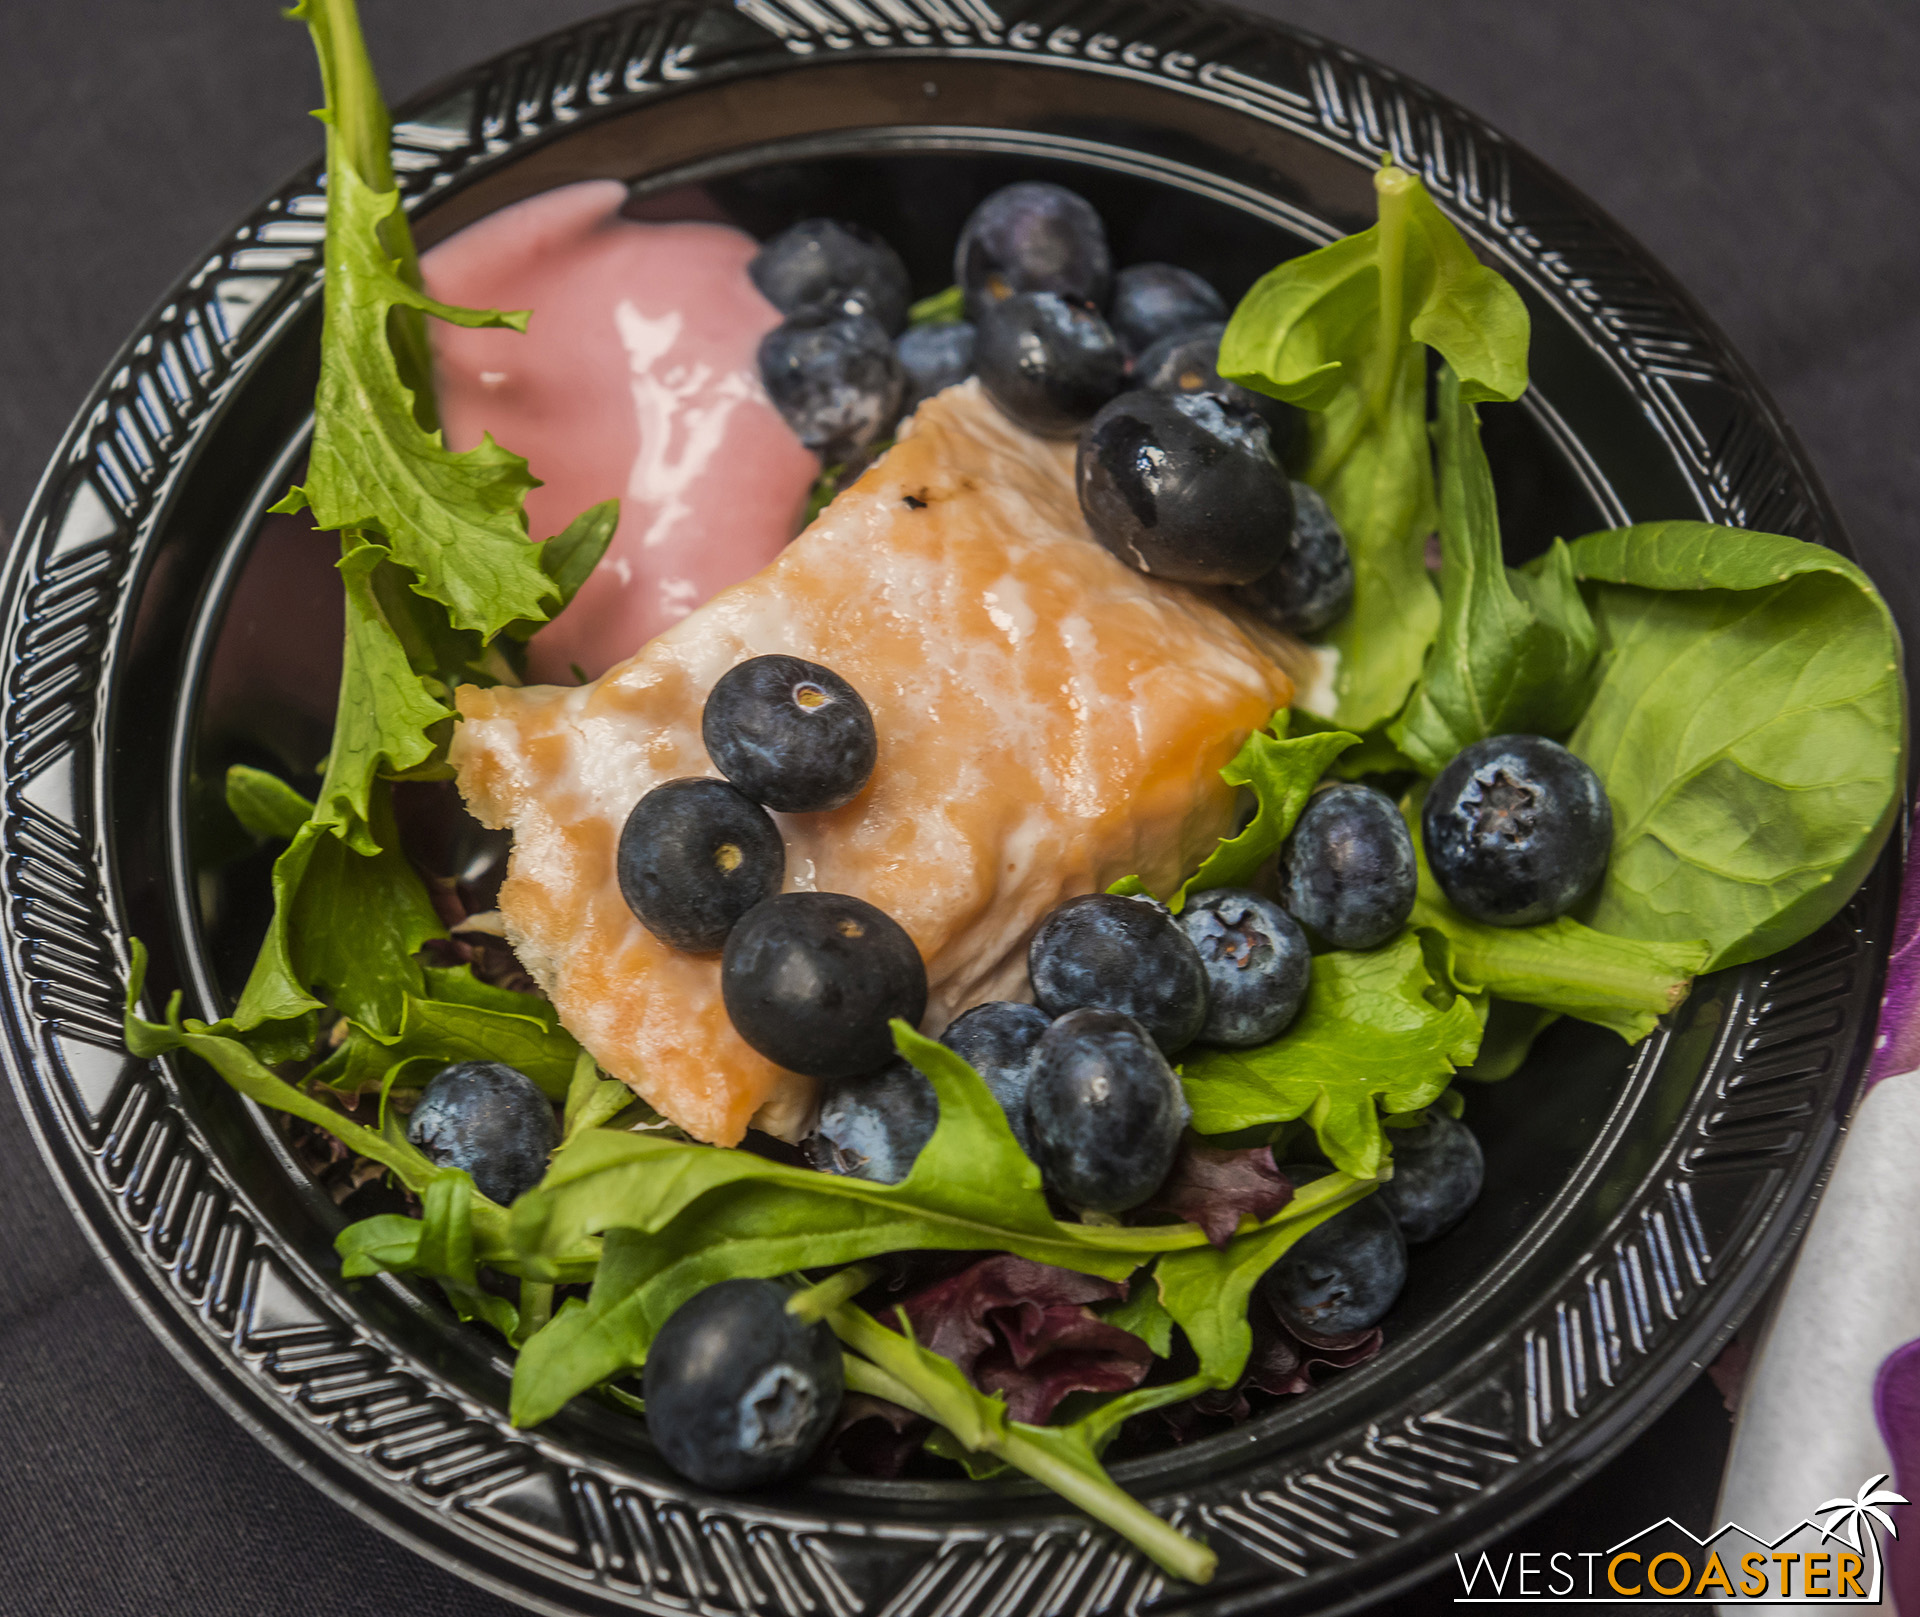 Still love this salmon and salad dish.